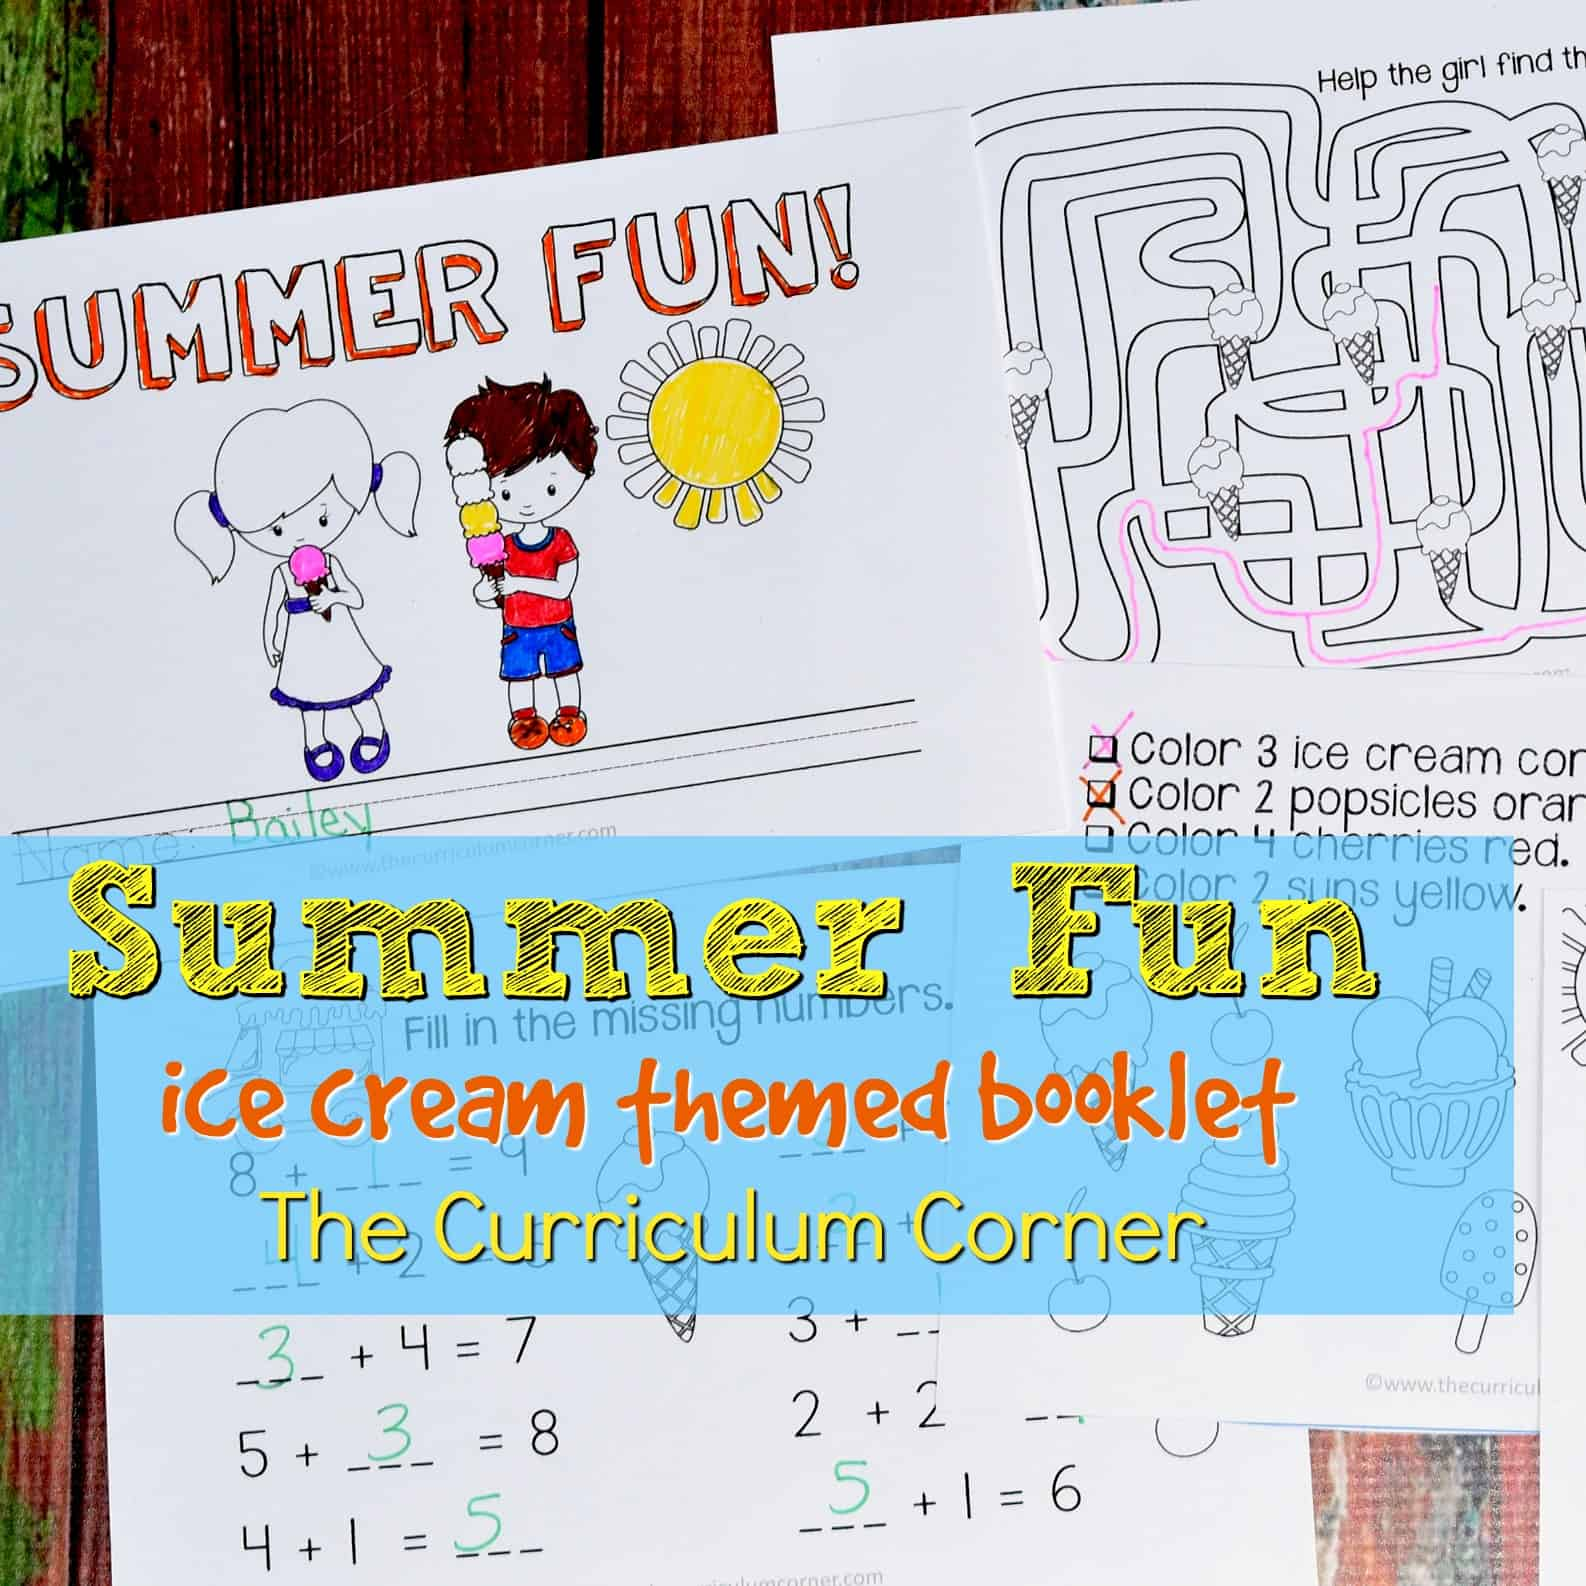 Summer Fun Ice Cream Book